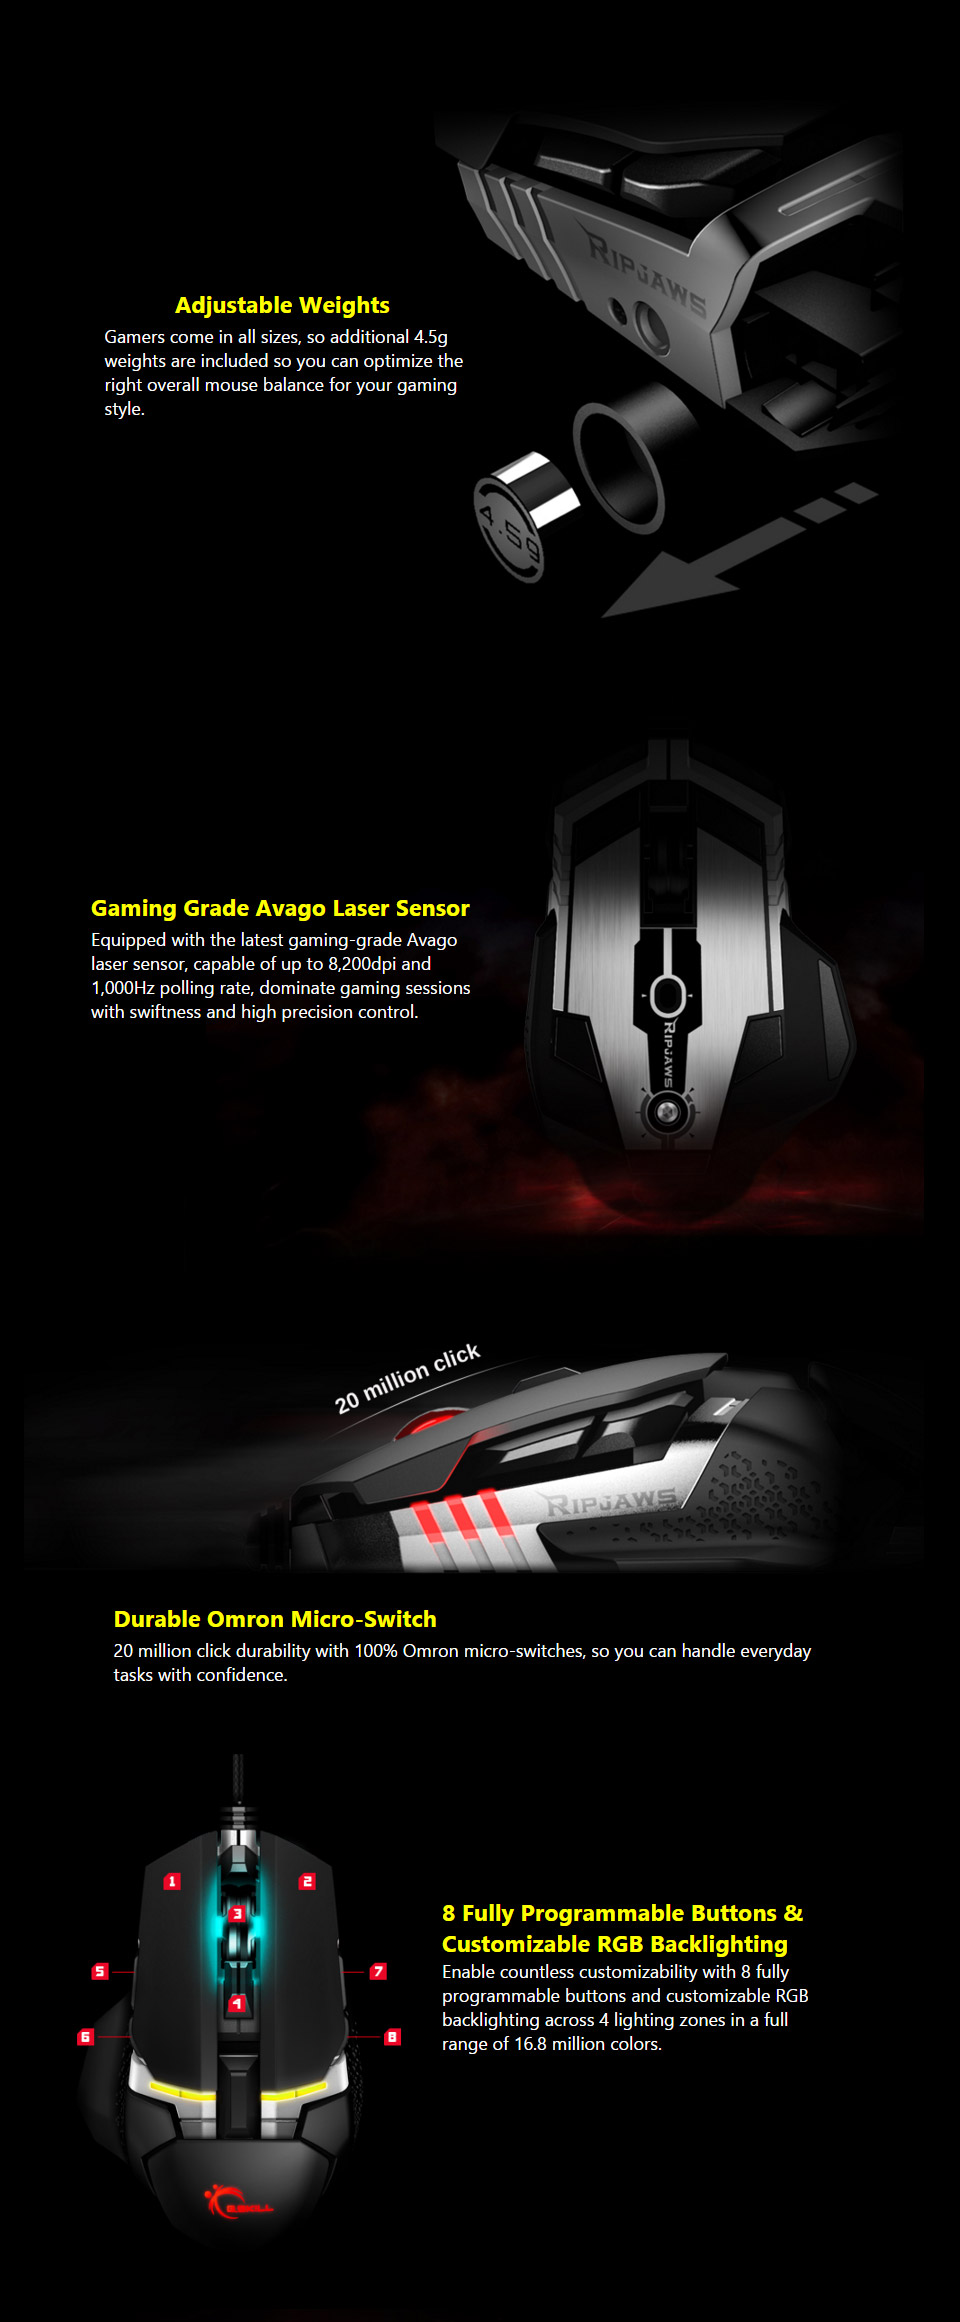 Gskill Ripjaws Mx780 Rgb Laser Gaming Mouse Gm L8200cl8 Mx780d10 Understanding A Microswitch Youtube Try Watching This Video On Youtubecom Or Enable Javascript If It Is Disabled In Your Browser